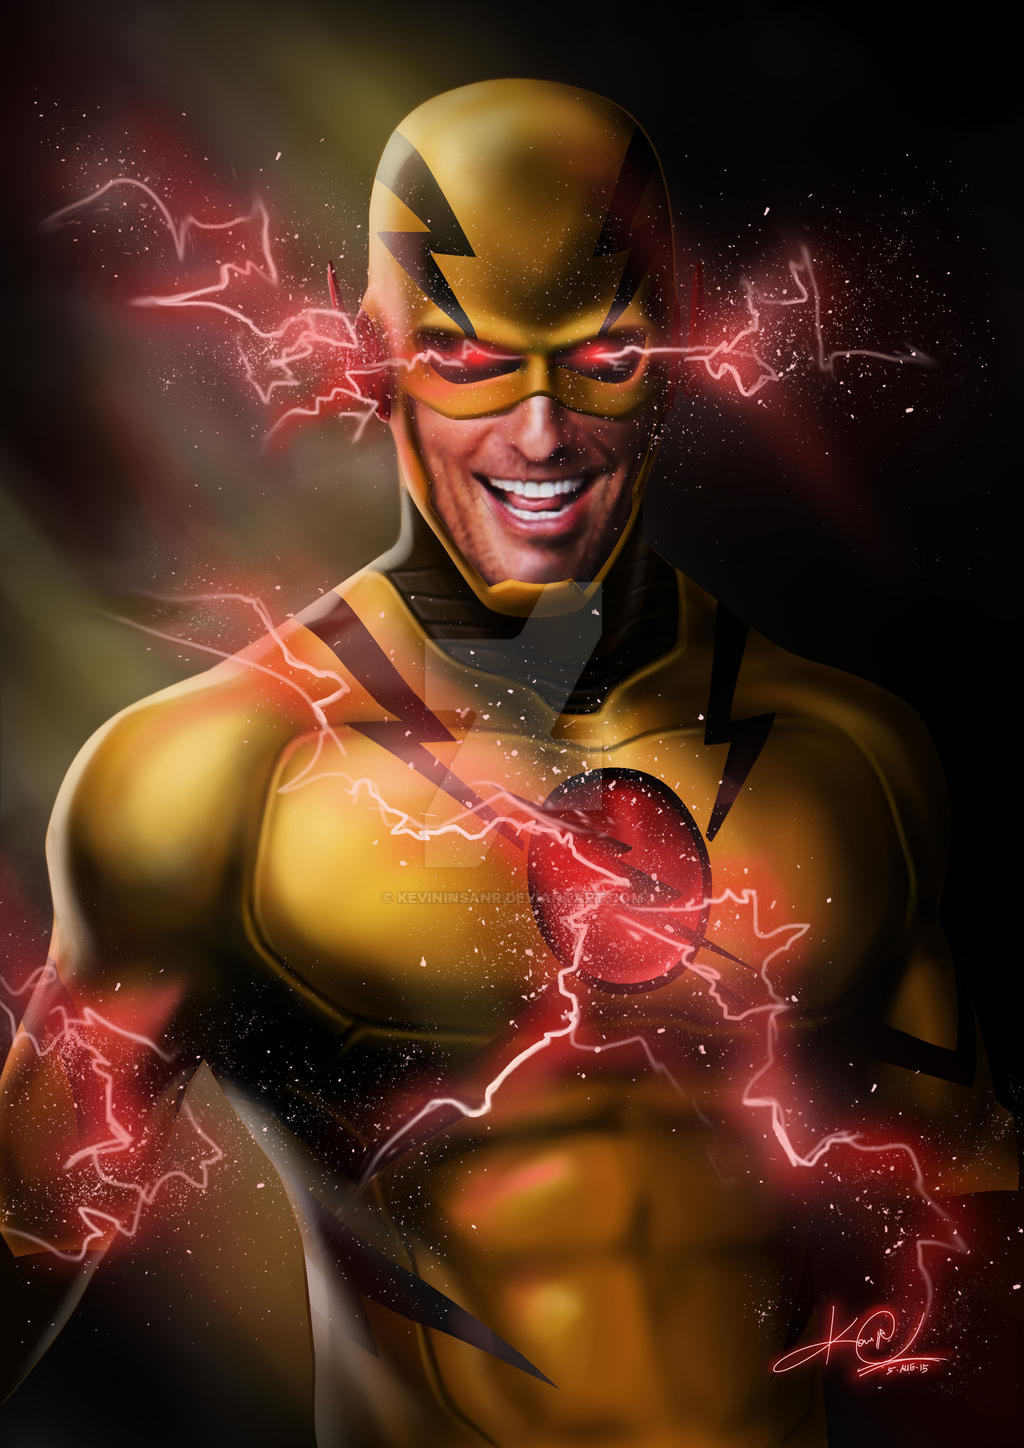 http://img04.deviantart.net/2e63/i/2015/217/b/f/reverse_flash___zoom___hunter_zolomon_by_kevininsanr-d94ajdp.jpg